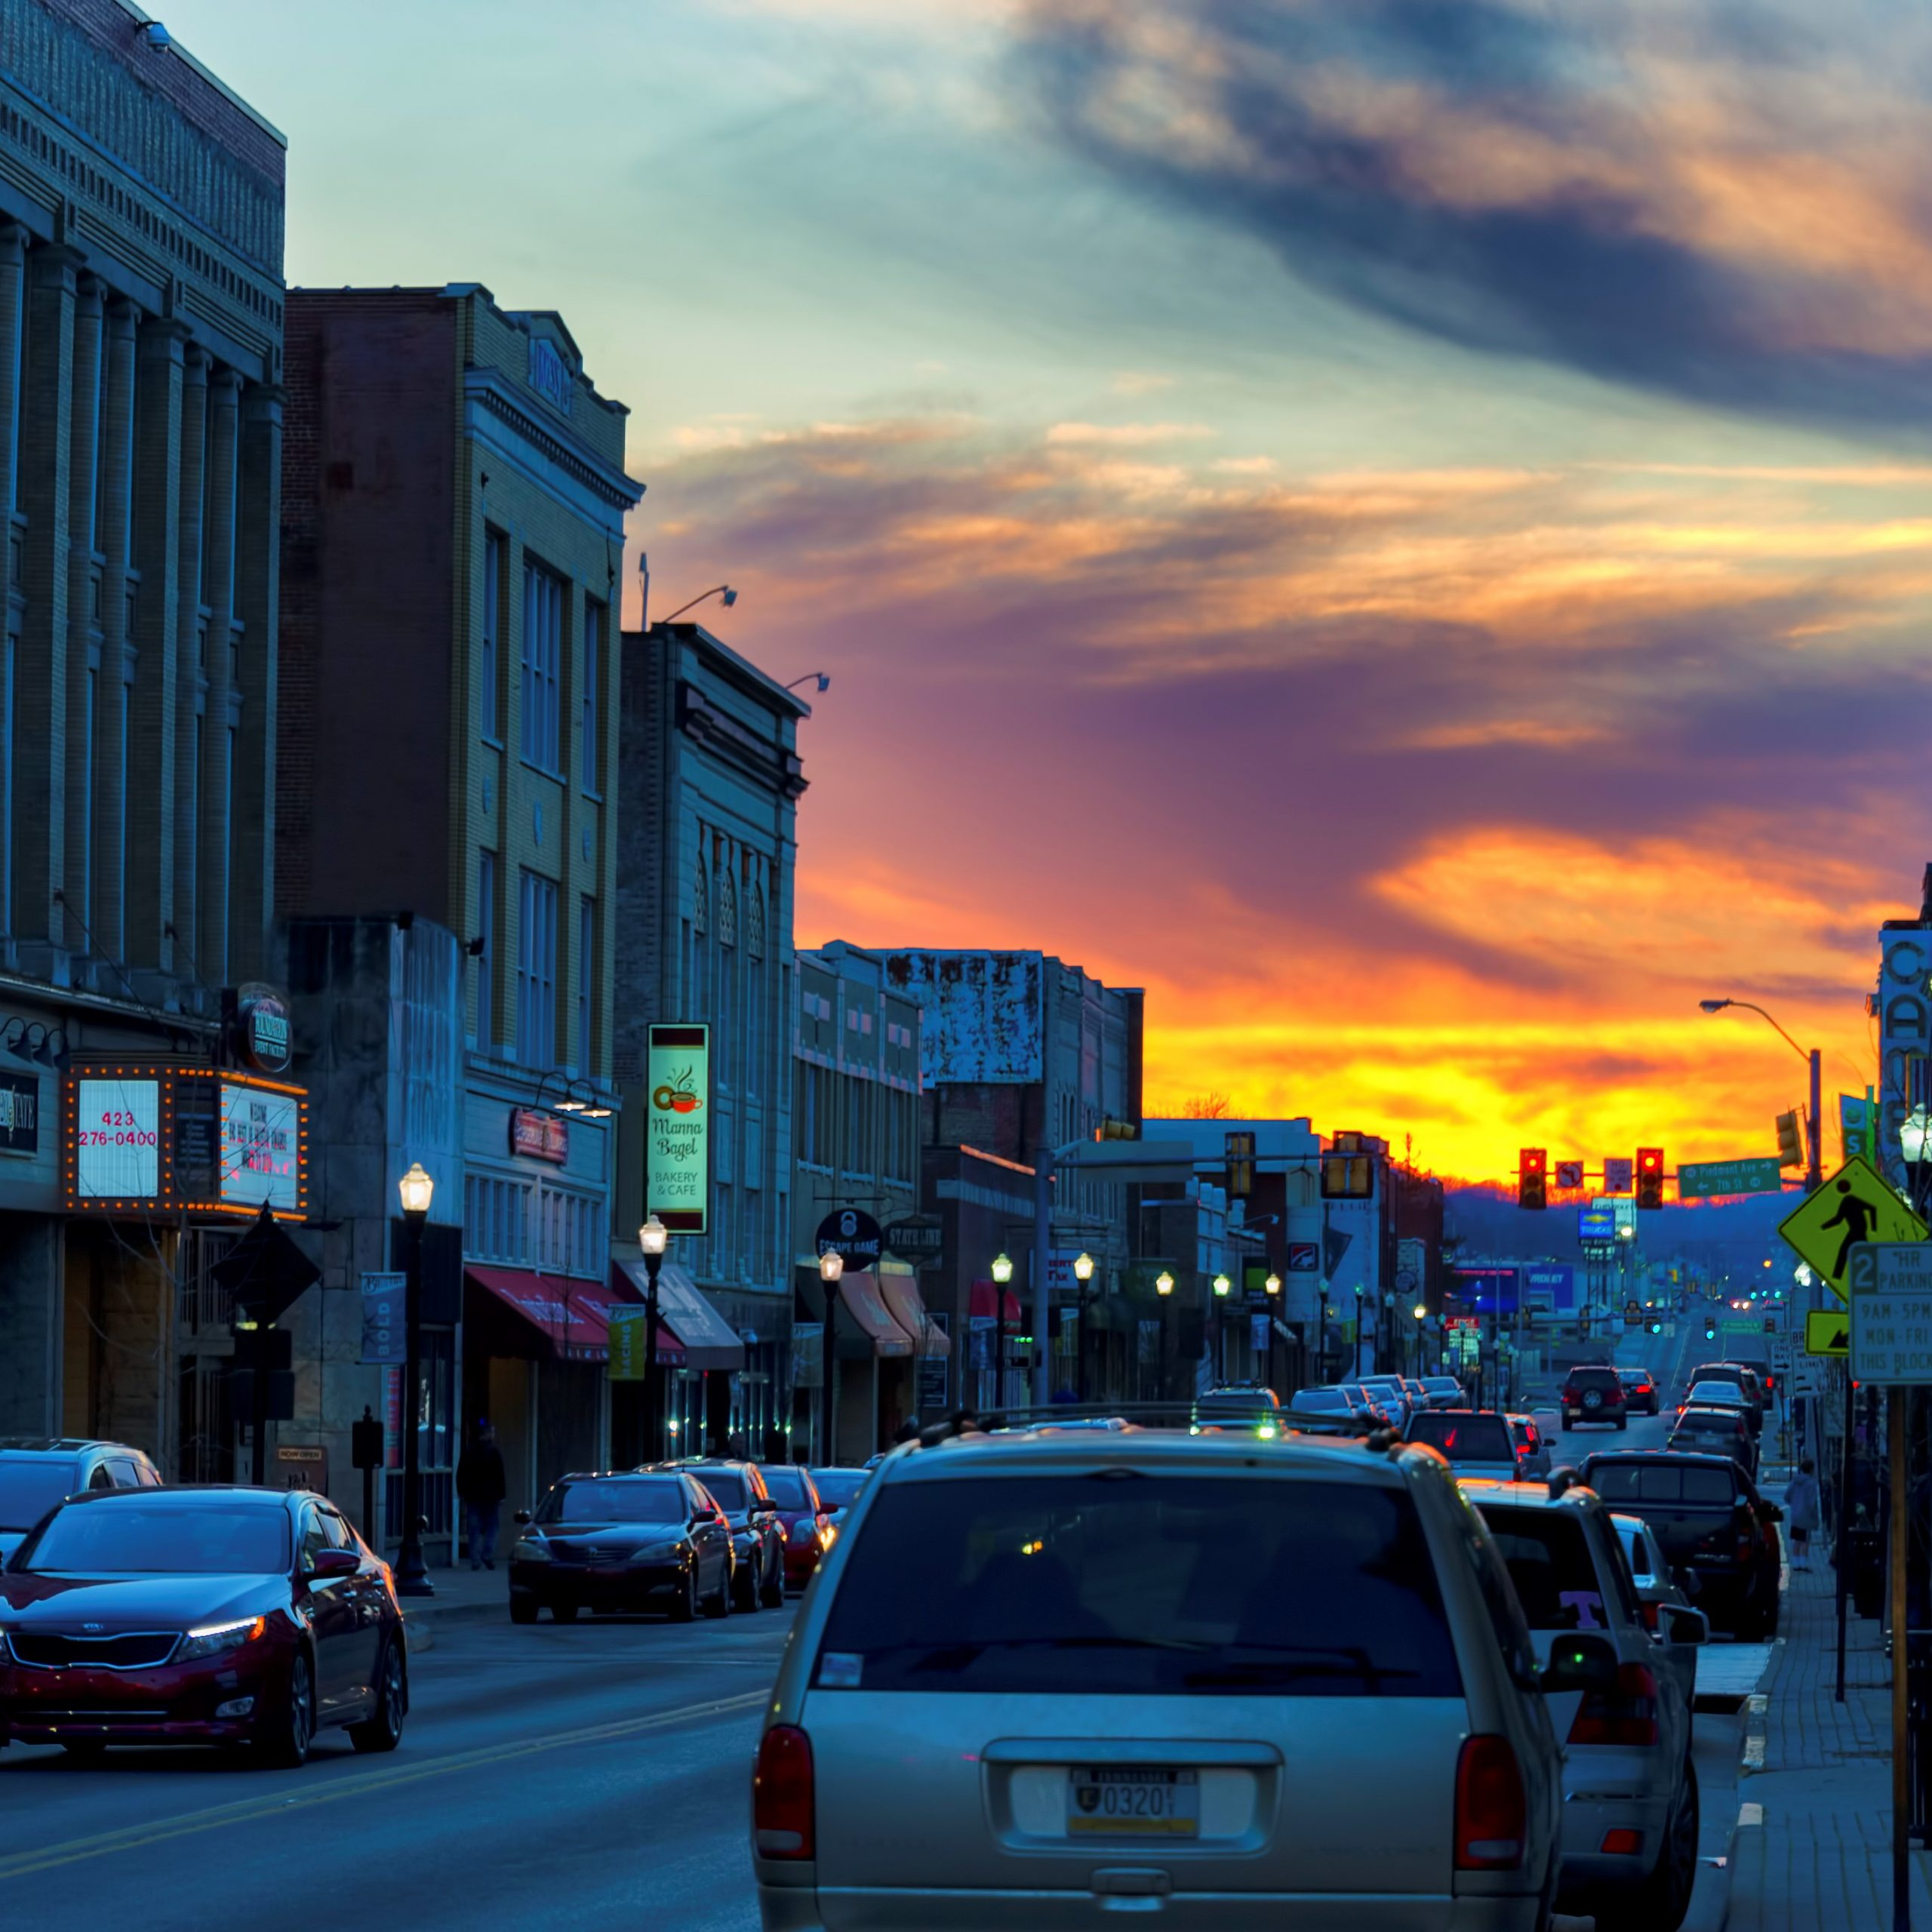 State Street In Bristol at dusk with colorful sunset skies.